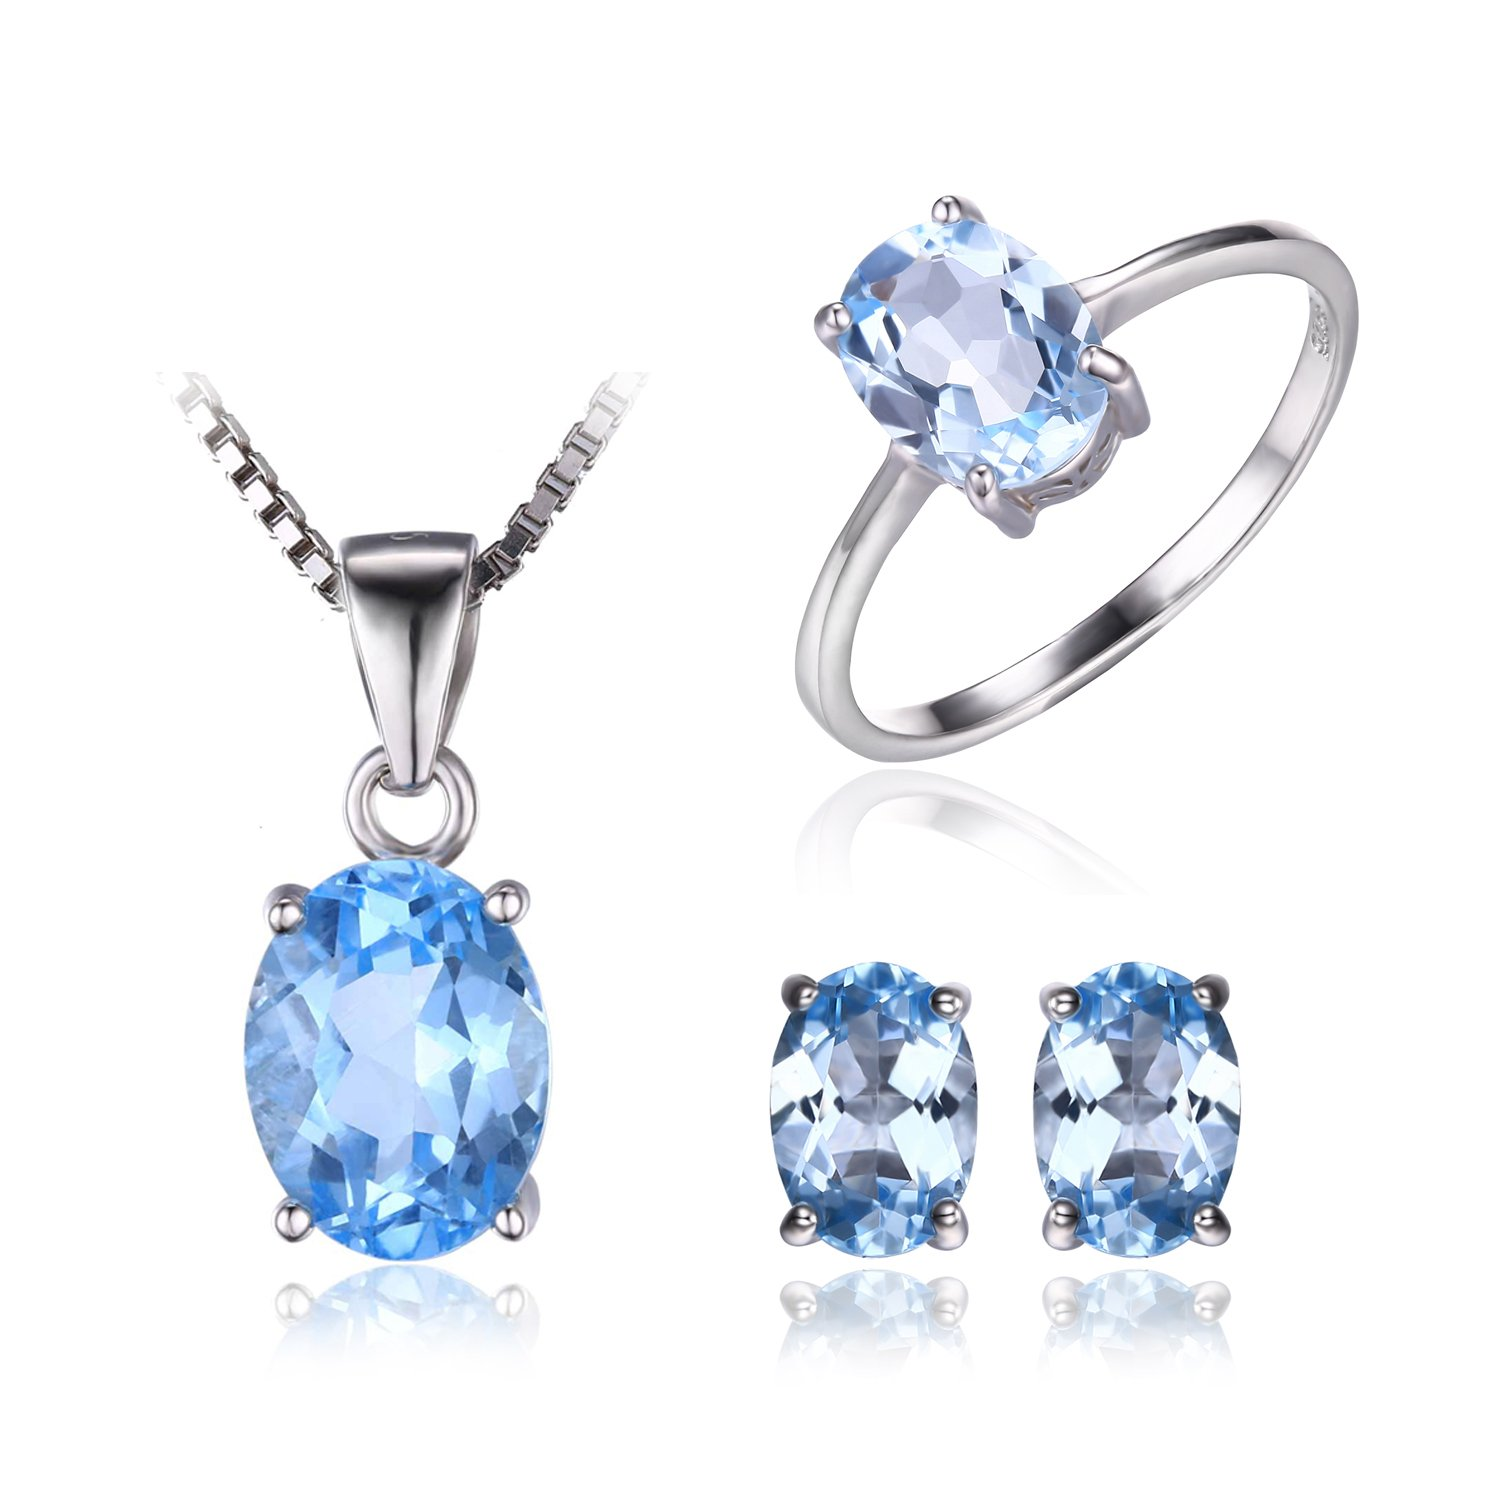 JewelryPalace Sky Blue Topaz Sets Ring Stud Earrings Pendant Necklace 925 Sterling Silver Size 8